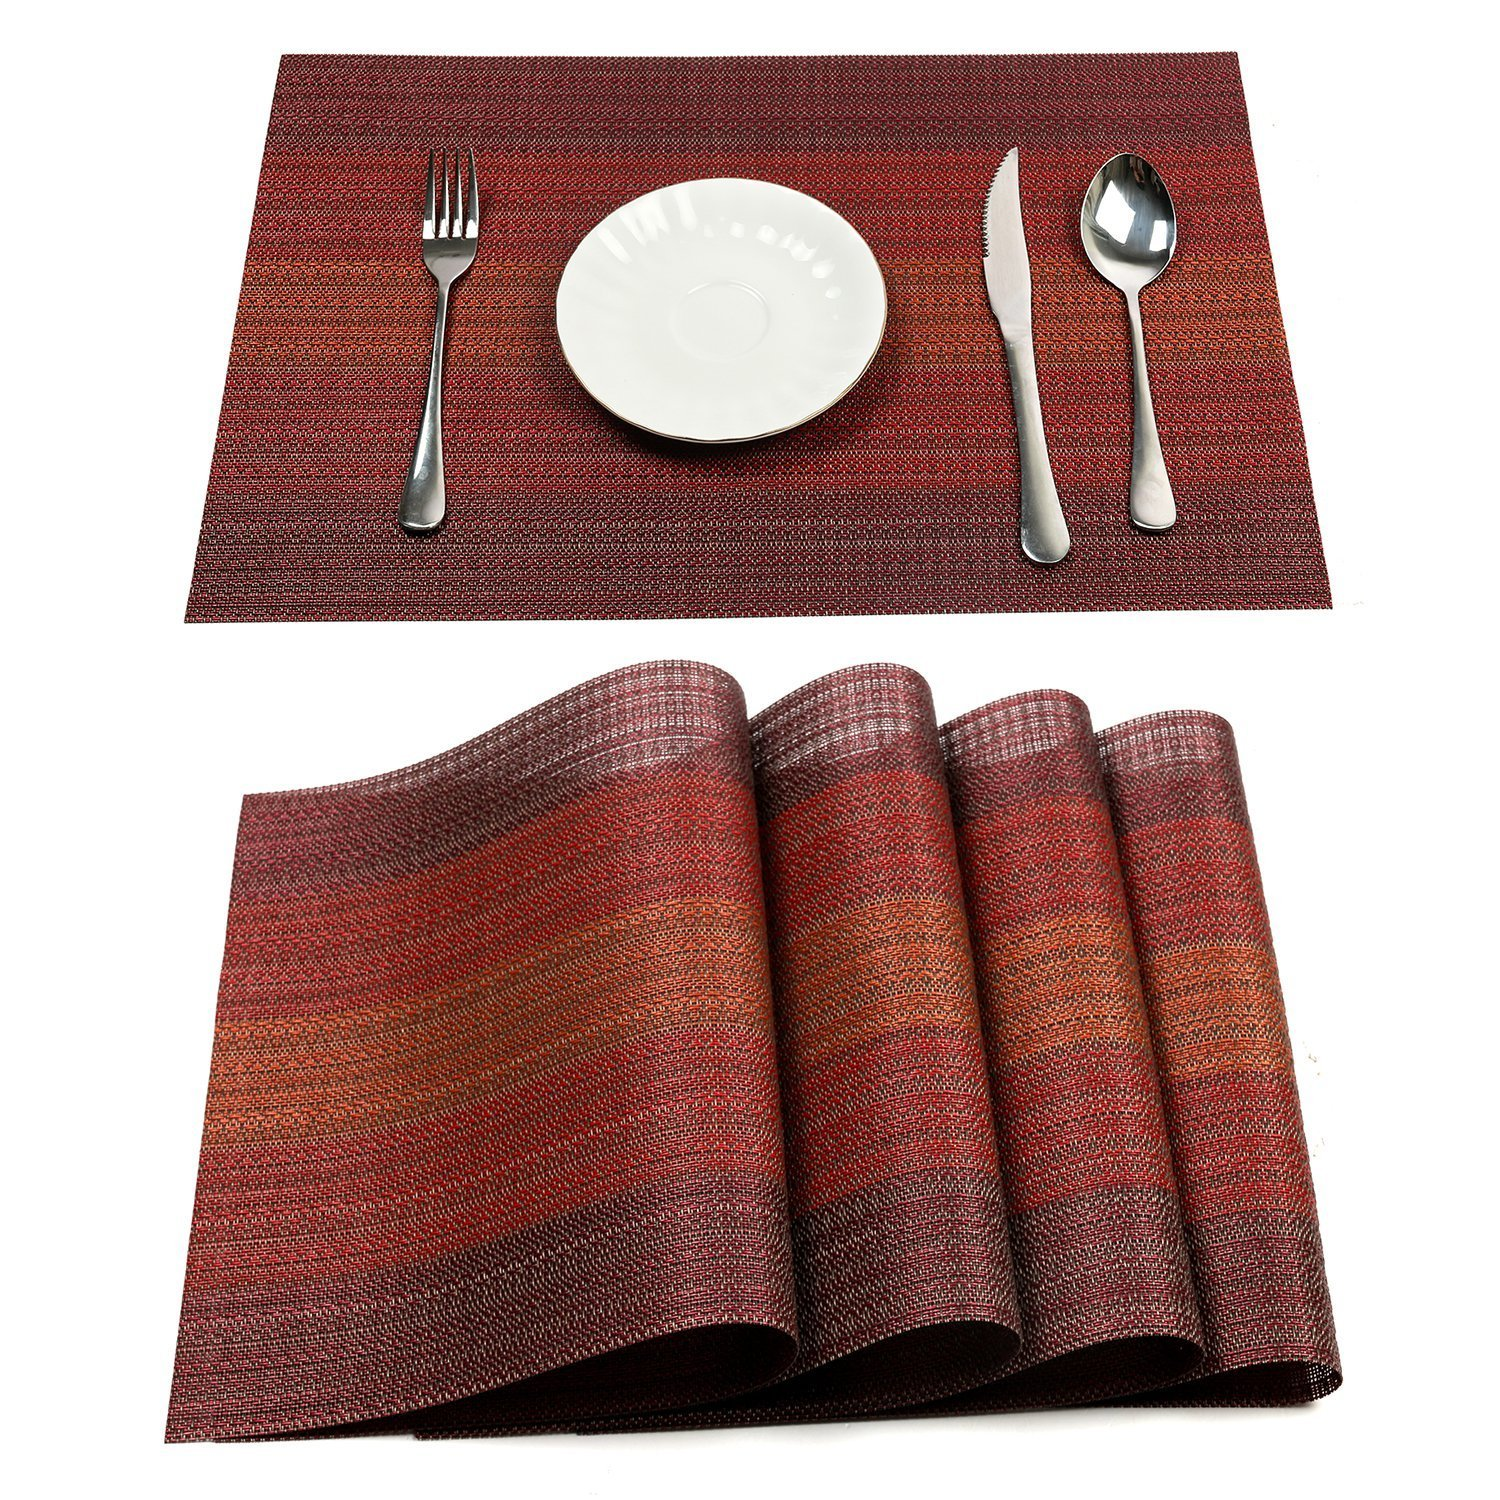 PAUWER Placemats Set of 6 Heat Insulation Stain Resistant Placemat for Dining Table Durable Crossweave Woven Vinyl Kitchen Table Mats Placemat (Red) by Pauwer (Image #1)